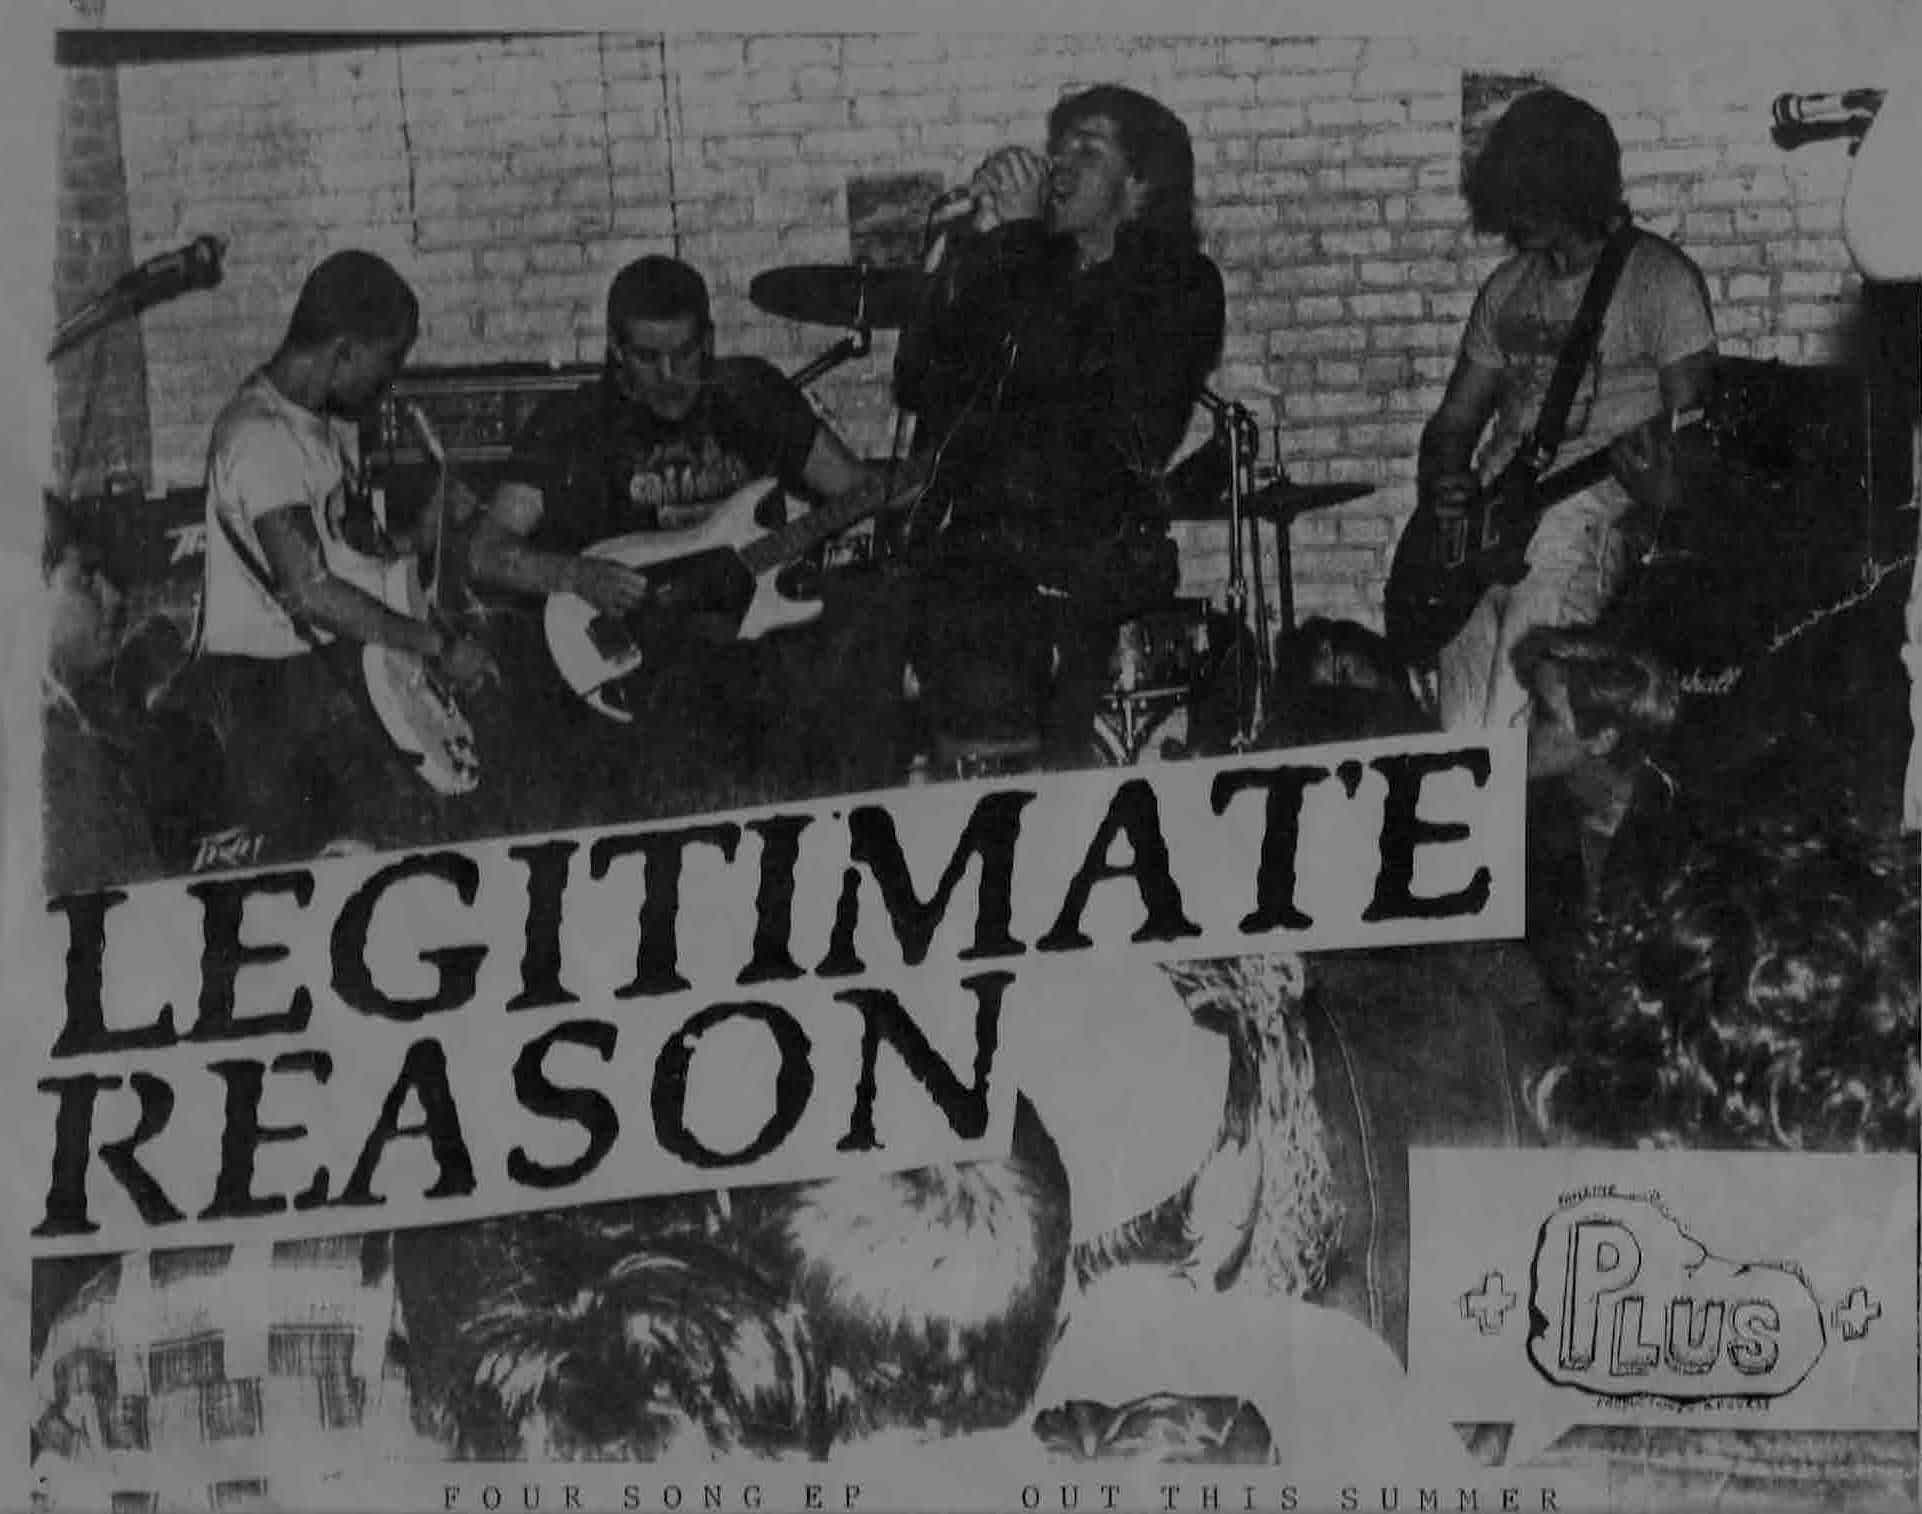 letigimate reason plus records ad